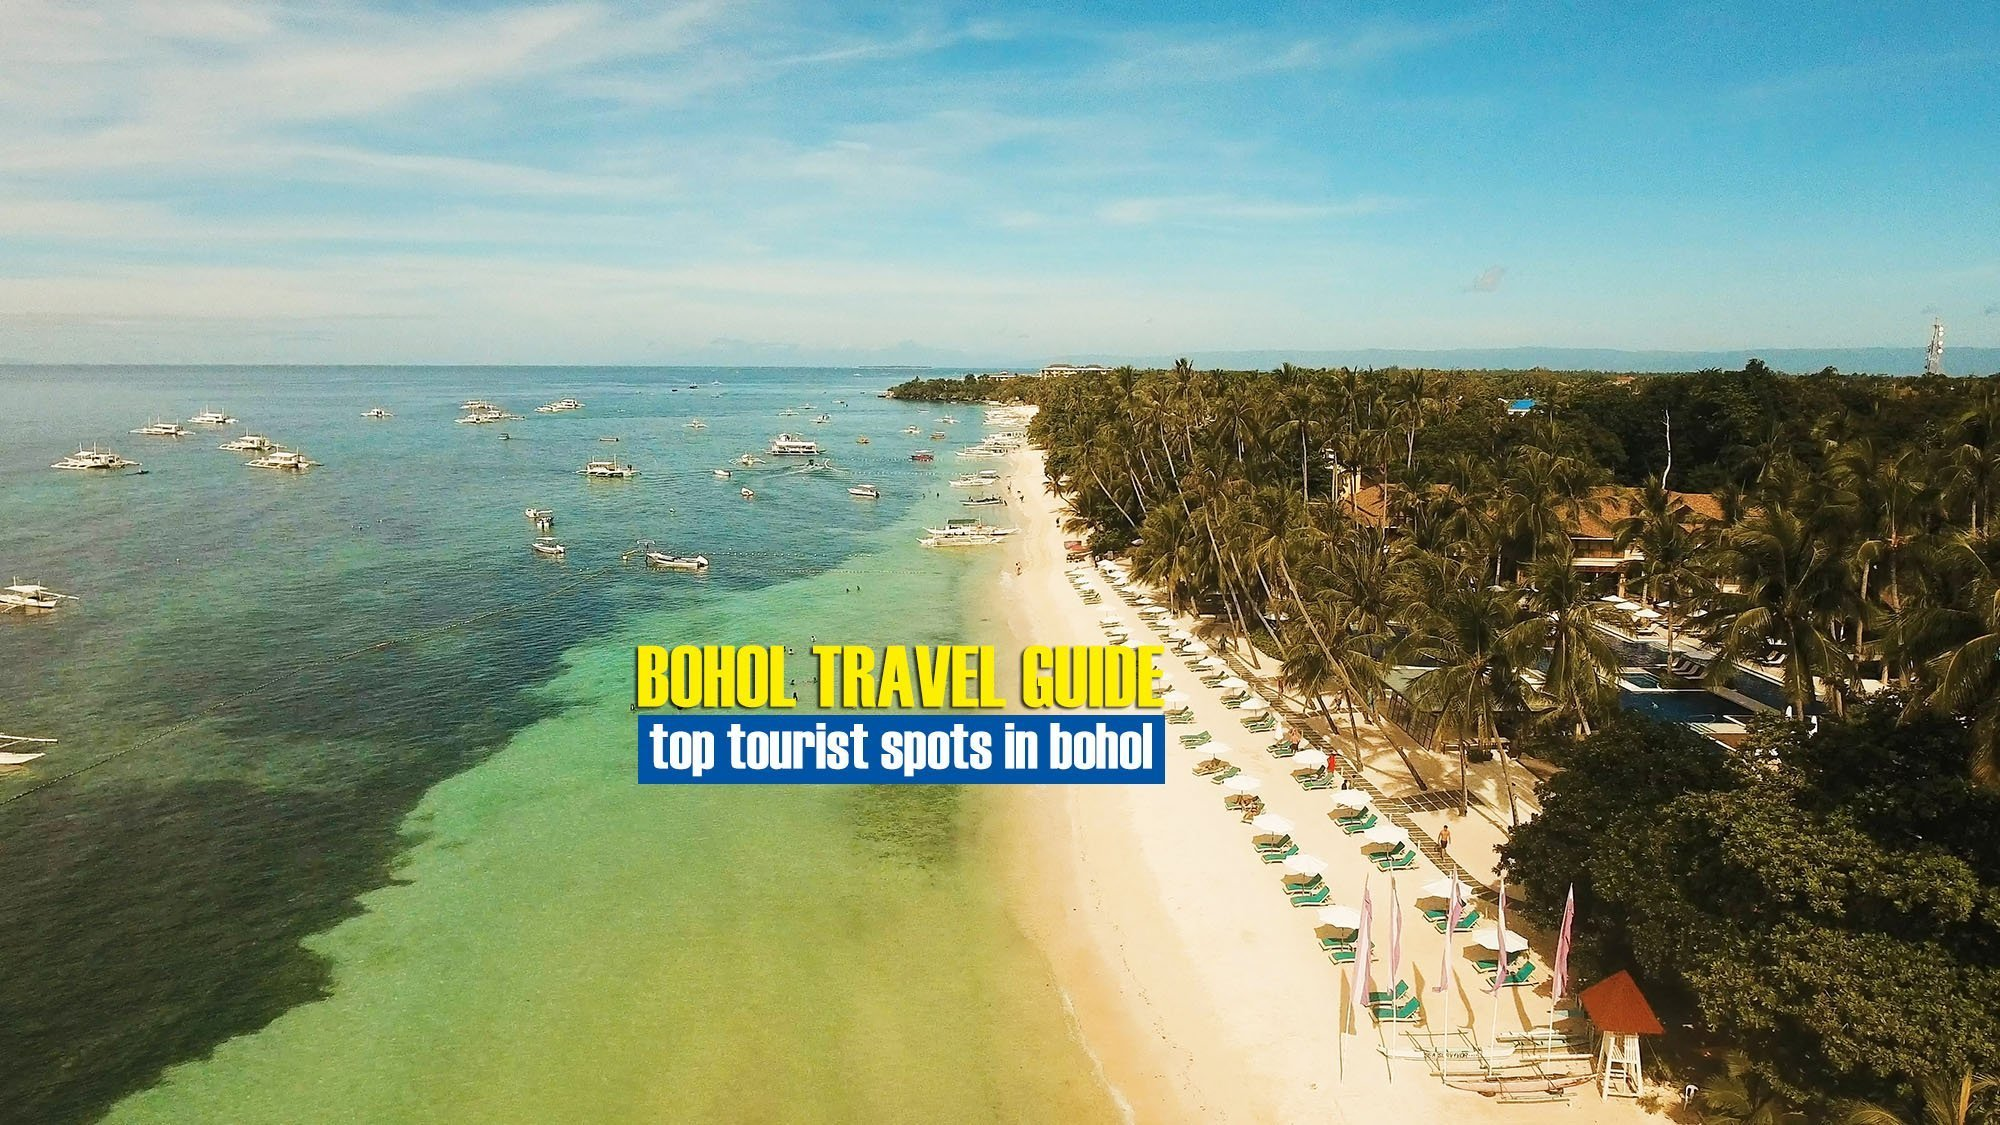 How to Spend 24 Hours in Bohol?